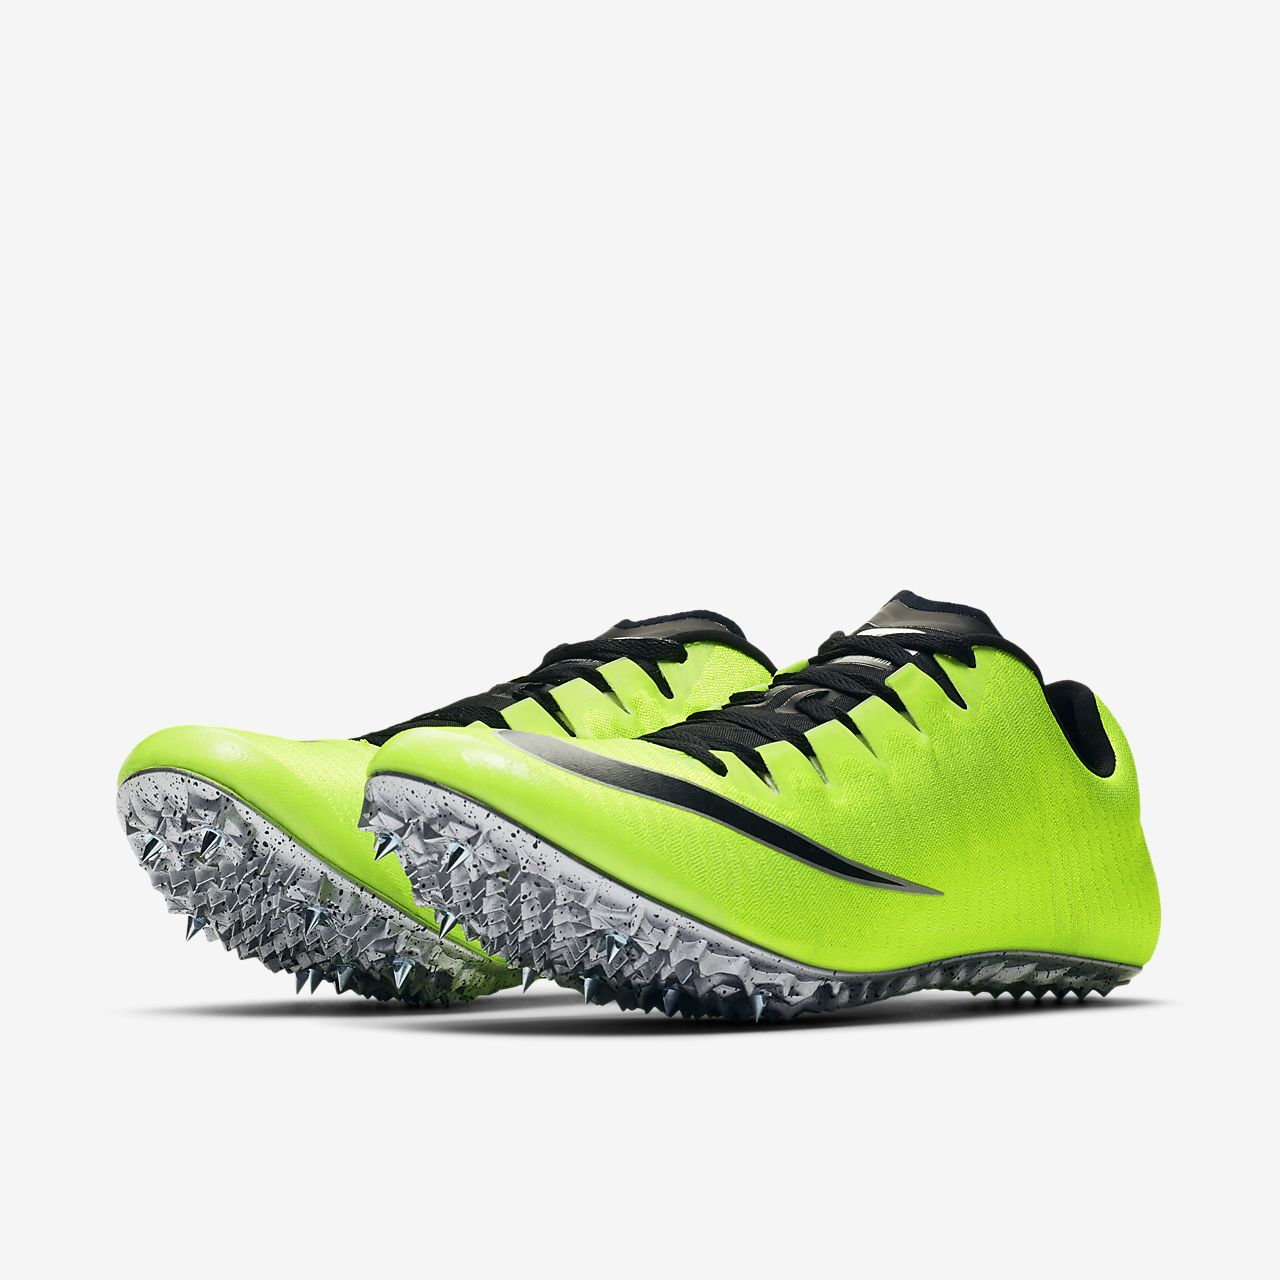 nike zoom elite track spikes63% OFF Nike Vapormax plus colors